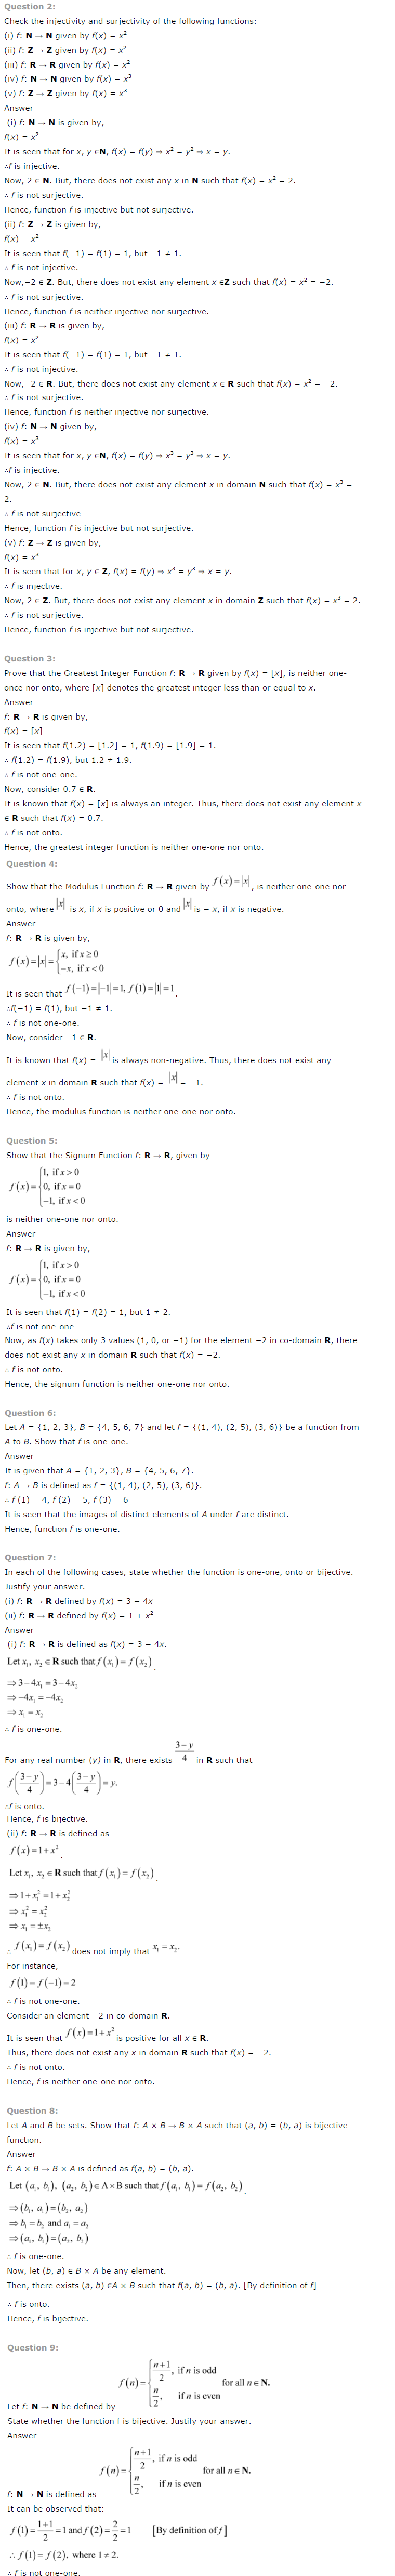 NCERT Solutions For Class 12 Maths Chapter 1 Relations and Functions 4